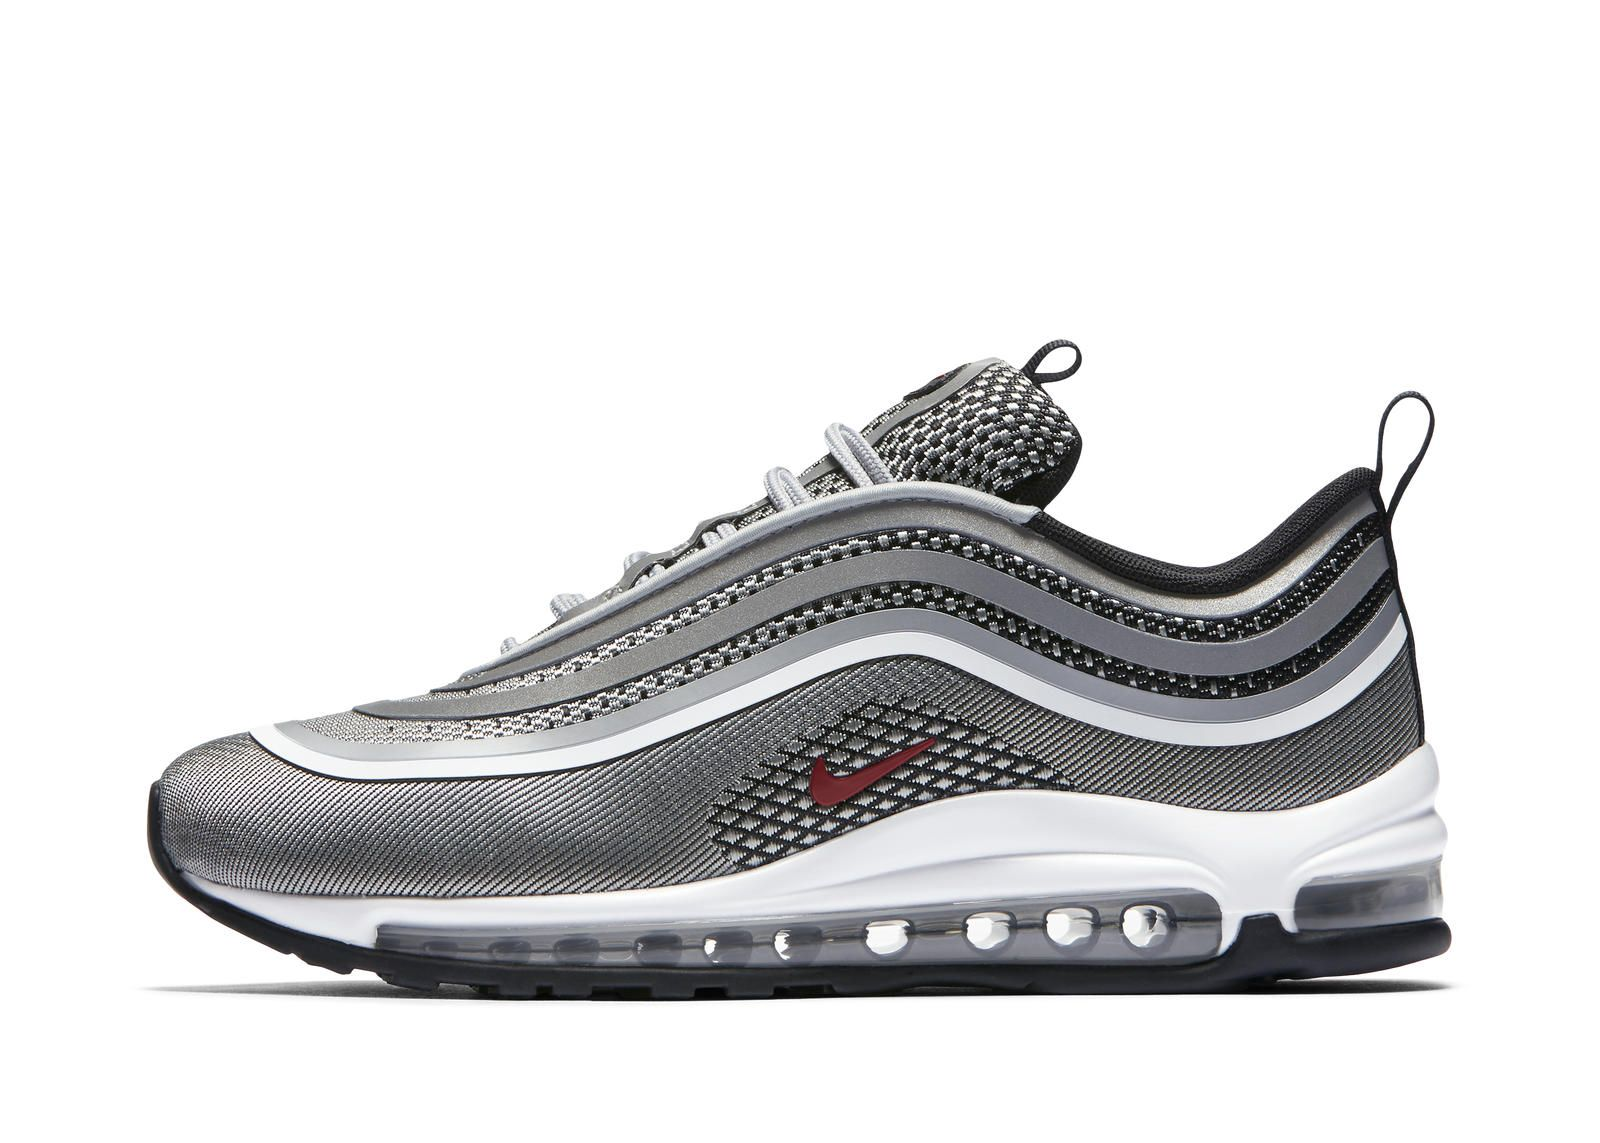 online store 71e3e a0de0 Nike News - New Fall Colorways for the Air Max 97 | SNEAK A PEAK ...